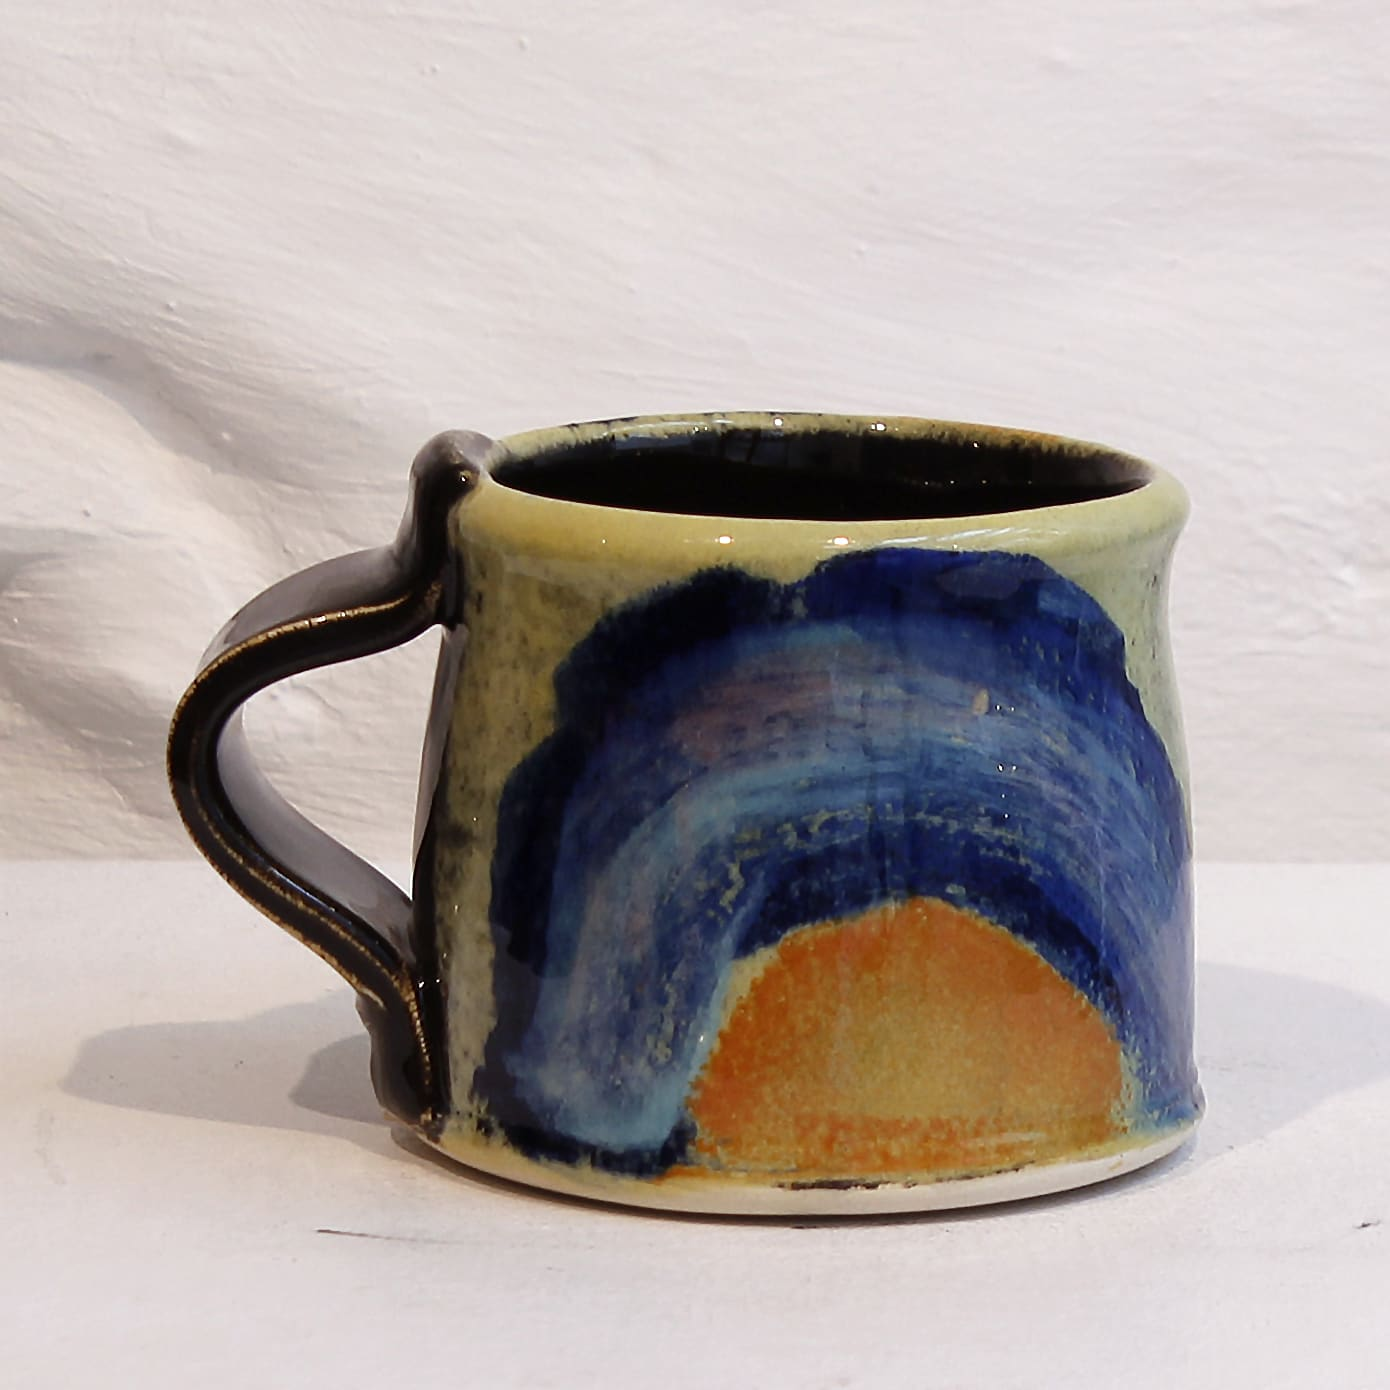 """<span class=""""link fancybox-details-link""""><a href=""""/artists/100-john-pollex/works/5934-john-pollex-small-mug-5-2018/"""">View Detail Page</a></span><div class=""""artist""""><strong>John Pollex</strong></div> b. 1941 <div class=""""title""""><em>Small Mug 5</em>, 2018</div> <div class=""""signed_and_dated"""">impressed with the artist's seal mark 'JP'</div> <div class=""""medium"""">white earthenware decorated with coloured slips</div><div class=""""price"""">£50.00</div><div class=""""copyright_line"""">Copyright The Artist</div>"""